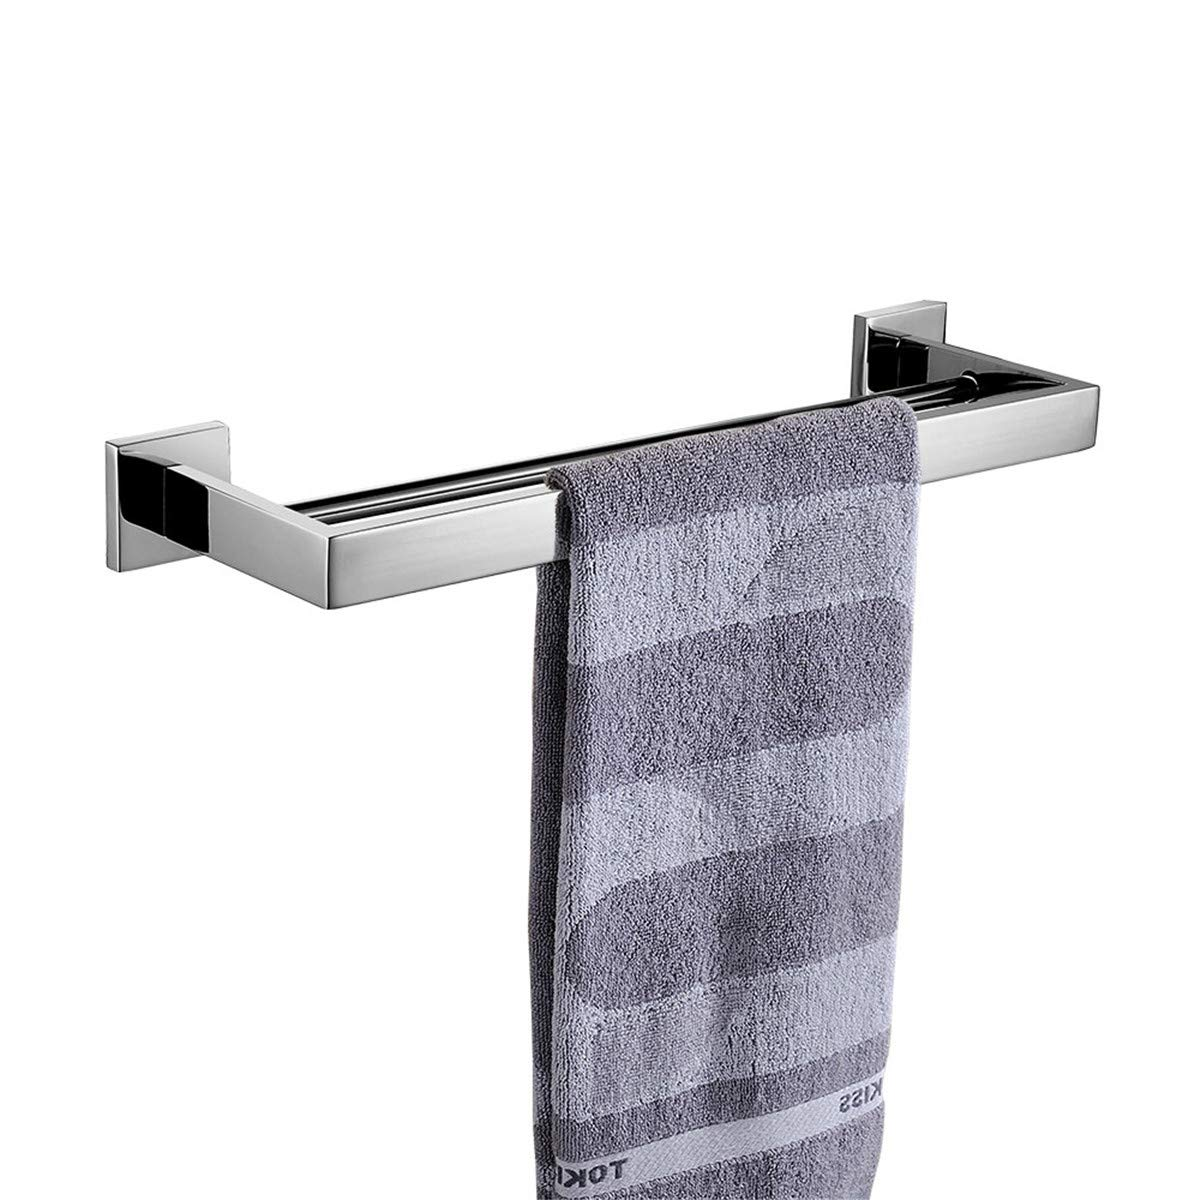 Flybath Towel Rail Short Single Layer 304 Stainless Steel Mirror Shine Bright Silver Towel Holder Wall Screws Mounting Towel Bar, 40 cm/15.7 inches